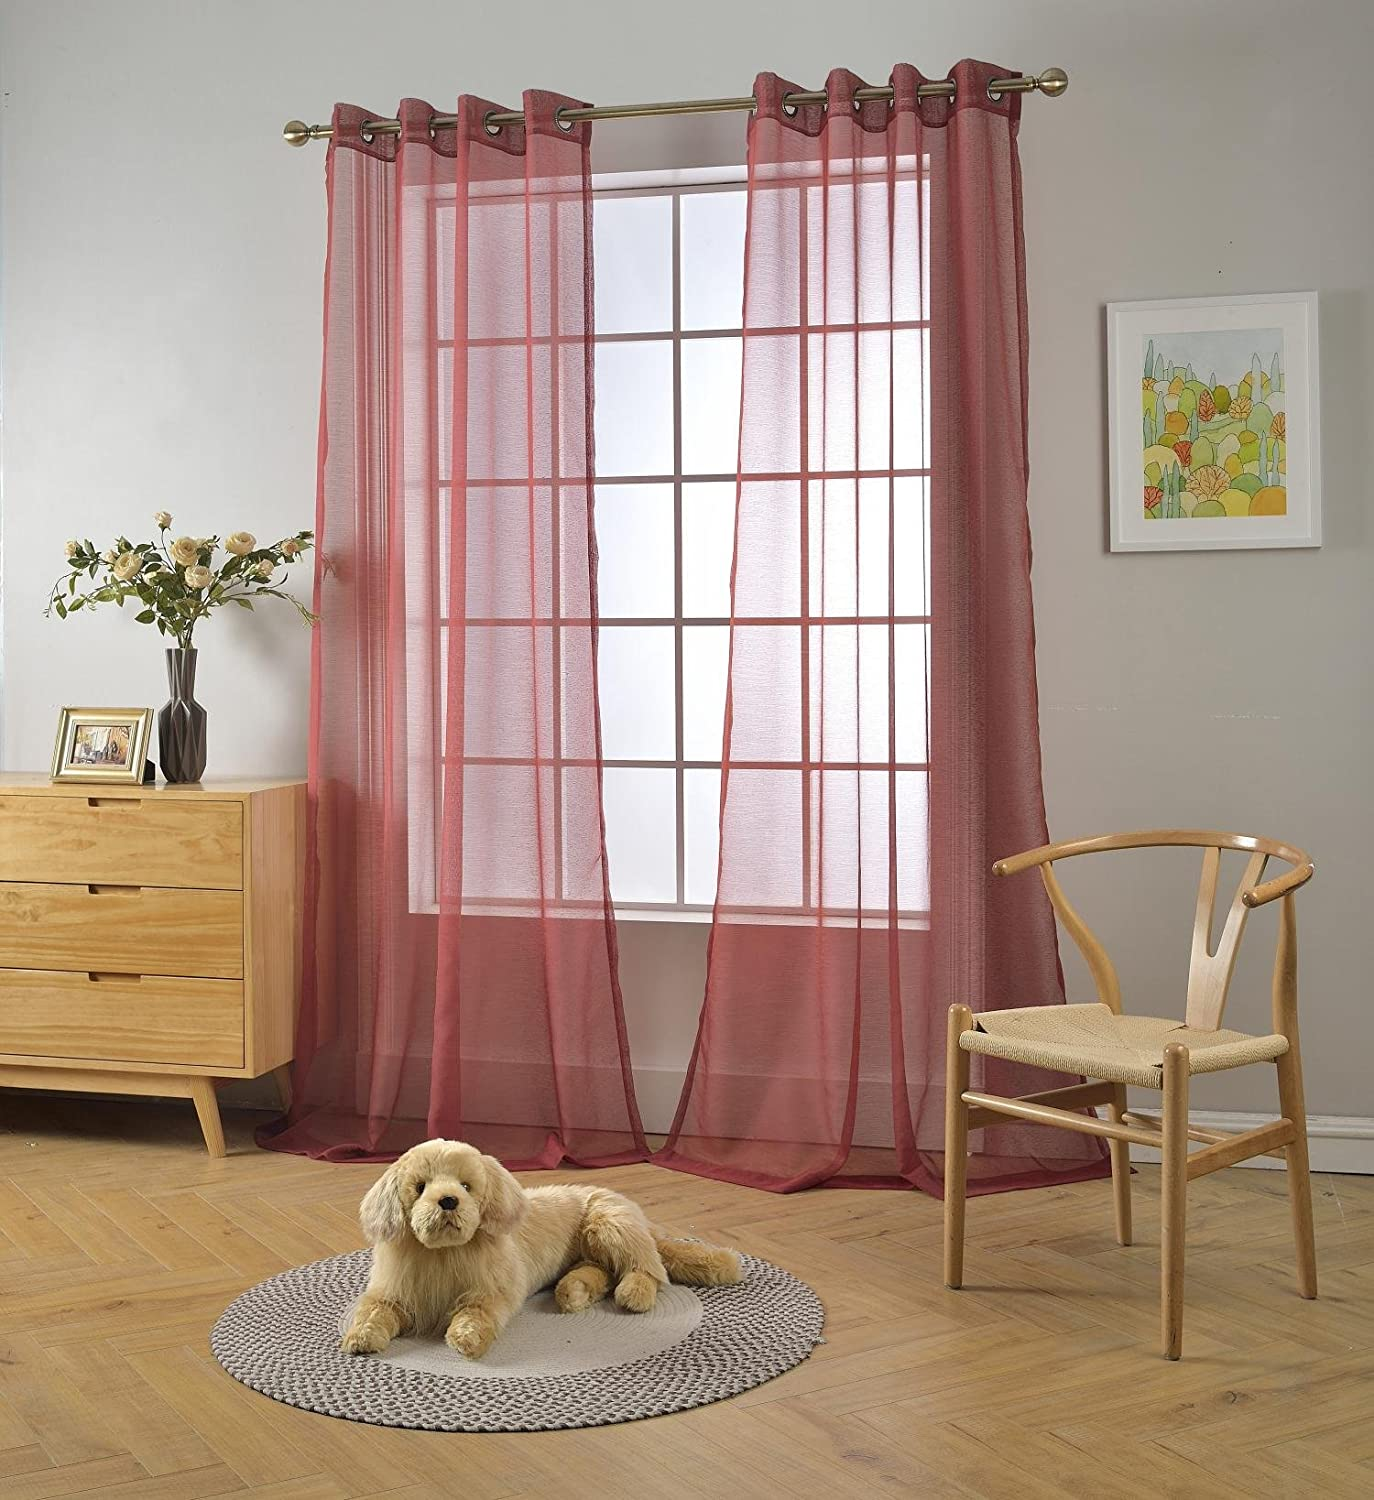 """MIUCO 2 Panels Grommet Textured Solid Sheer Curtains 84 Inches Long for Bedroom (2 x 54 Wide x 84"""" Long) Burgundy"""